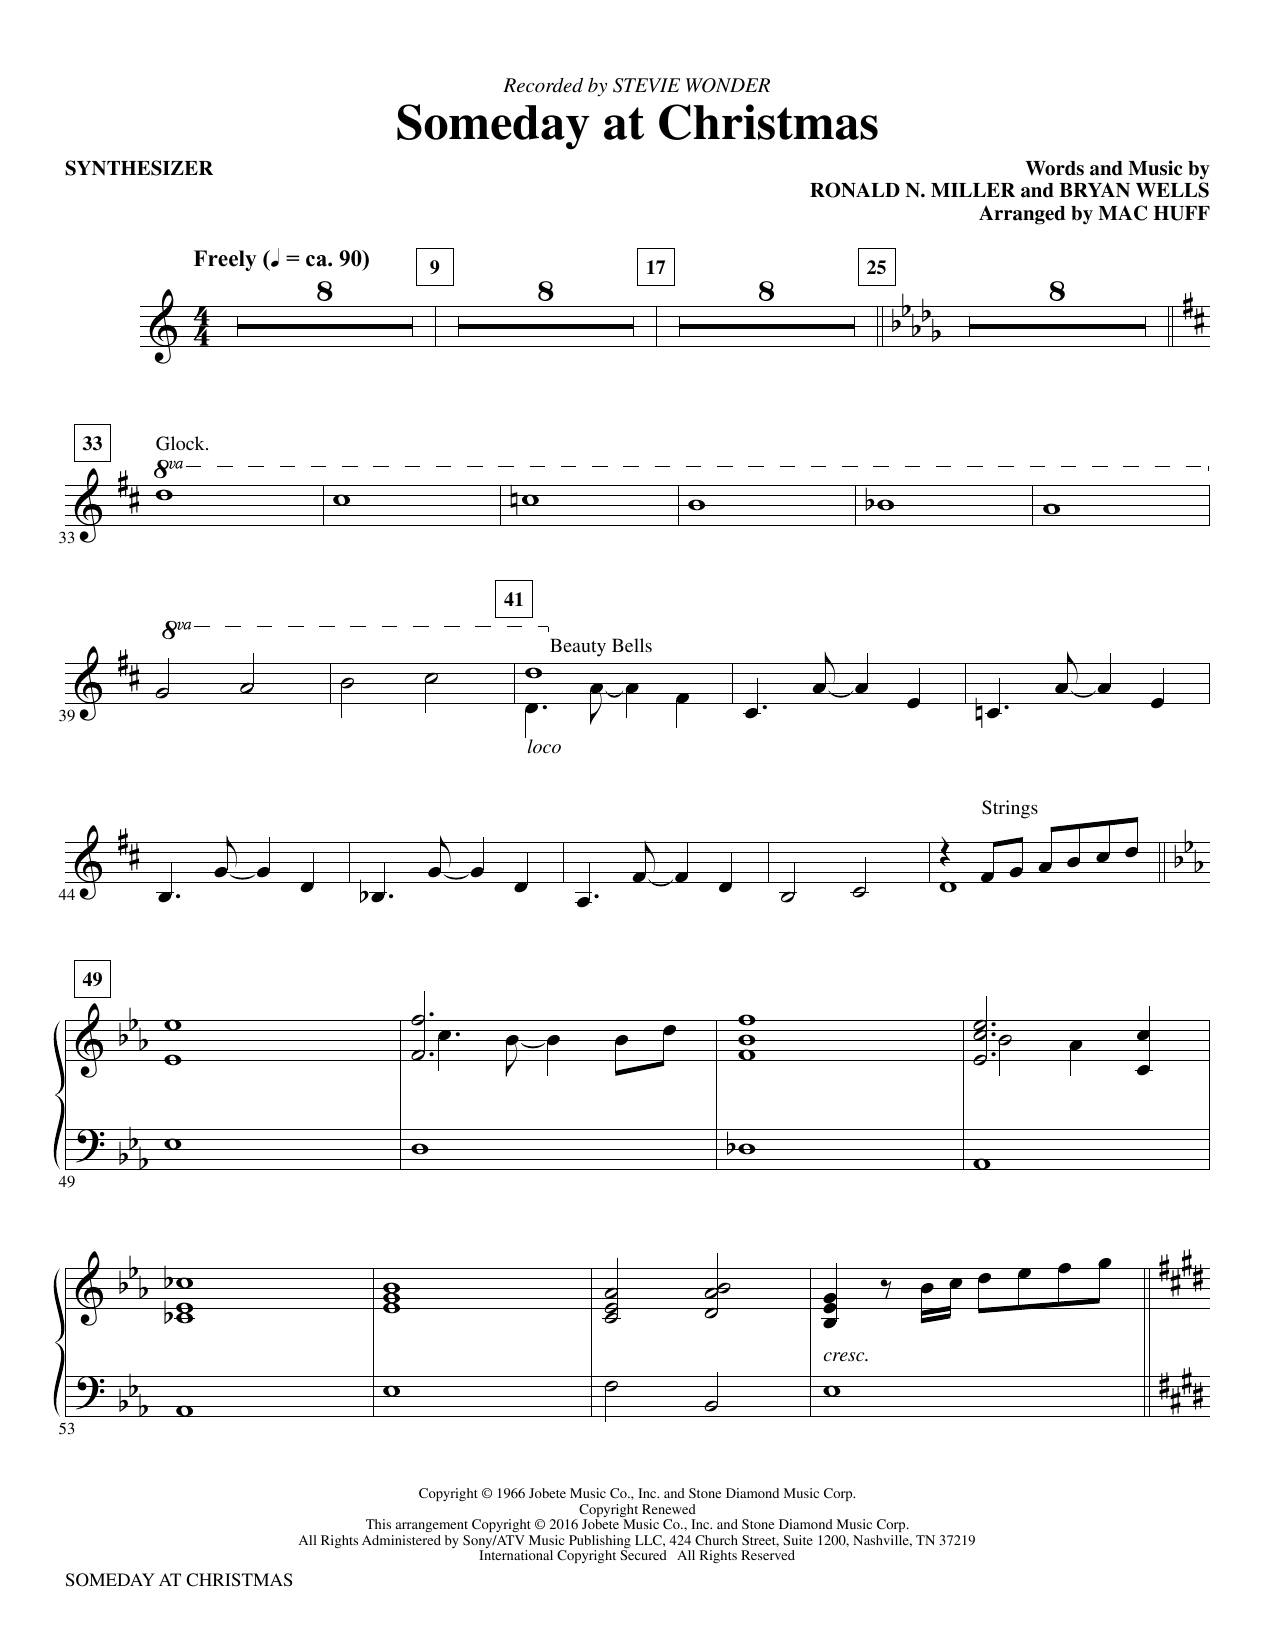 Someday at Christmas (complete set of parts) sheet music for orchestra/band by Ronald N. Miller, Bryan Wells and Mac Huff. Score Image Preview.